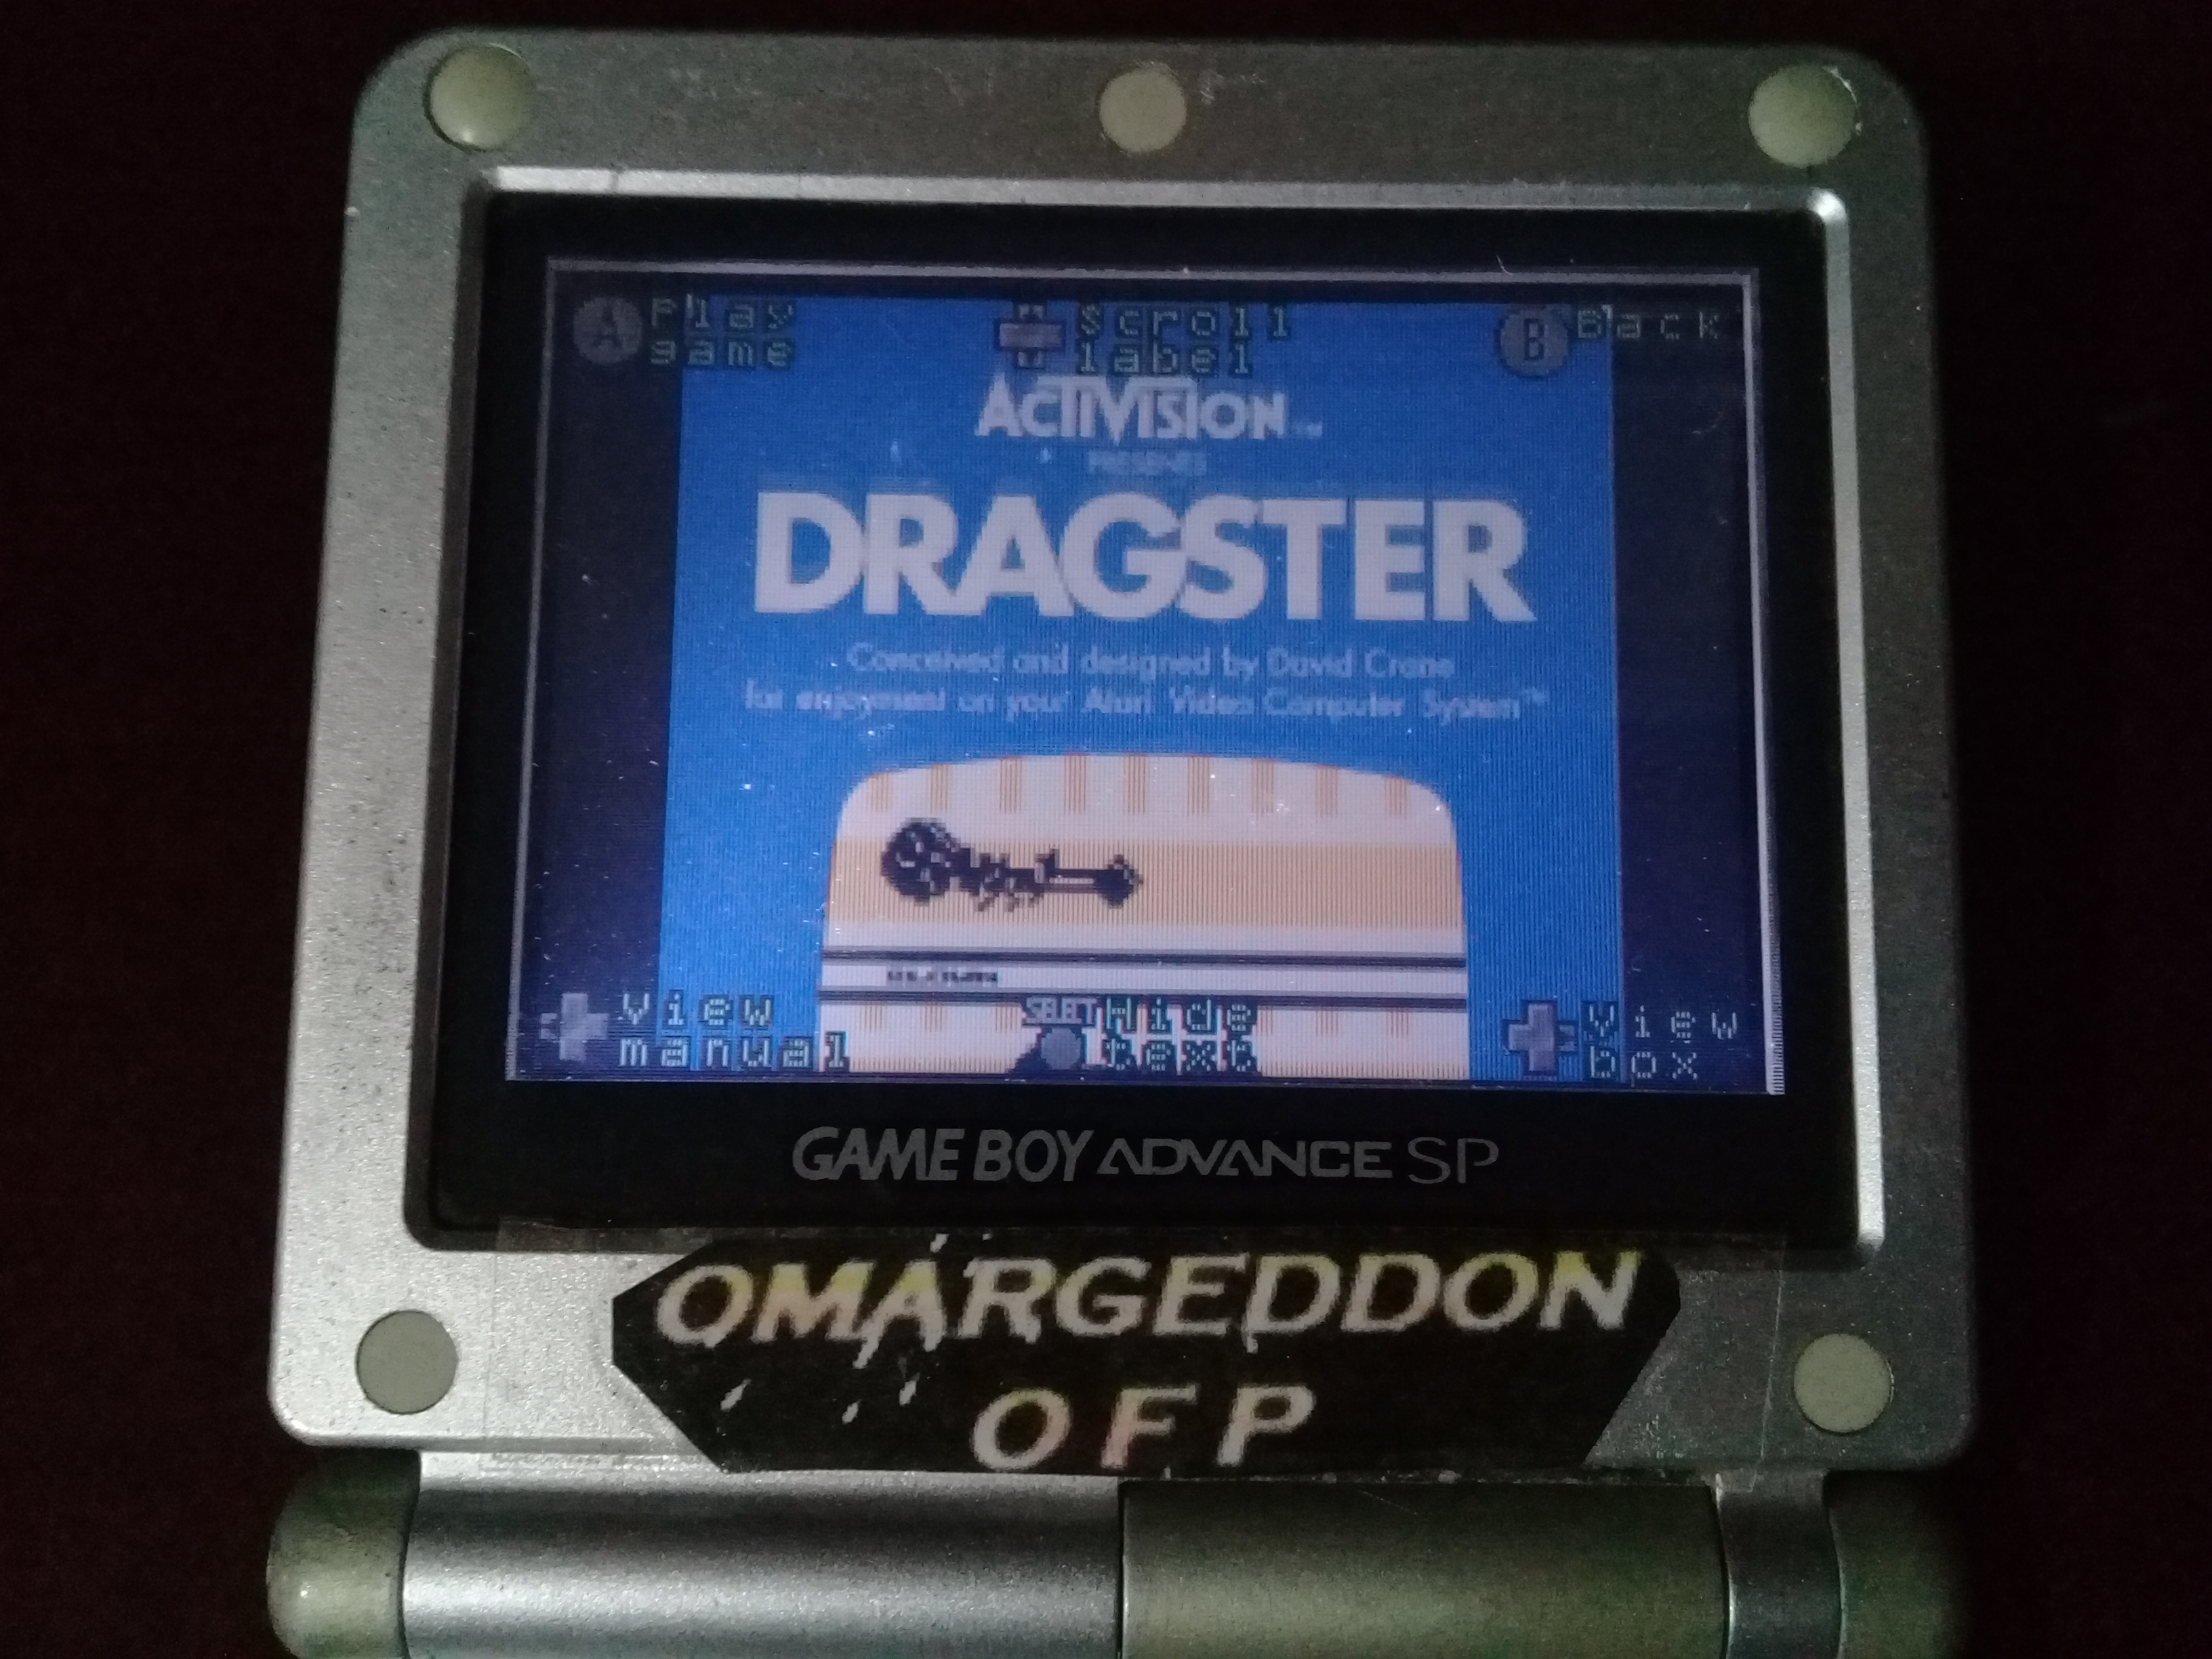 omargeddon: Activision Anthology: Dragster [Game 1B] (GBA) 0:00:06.17 points on 2019-09-16 12:46:32